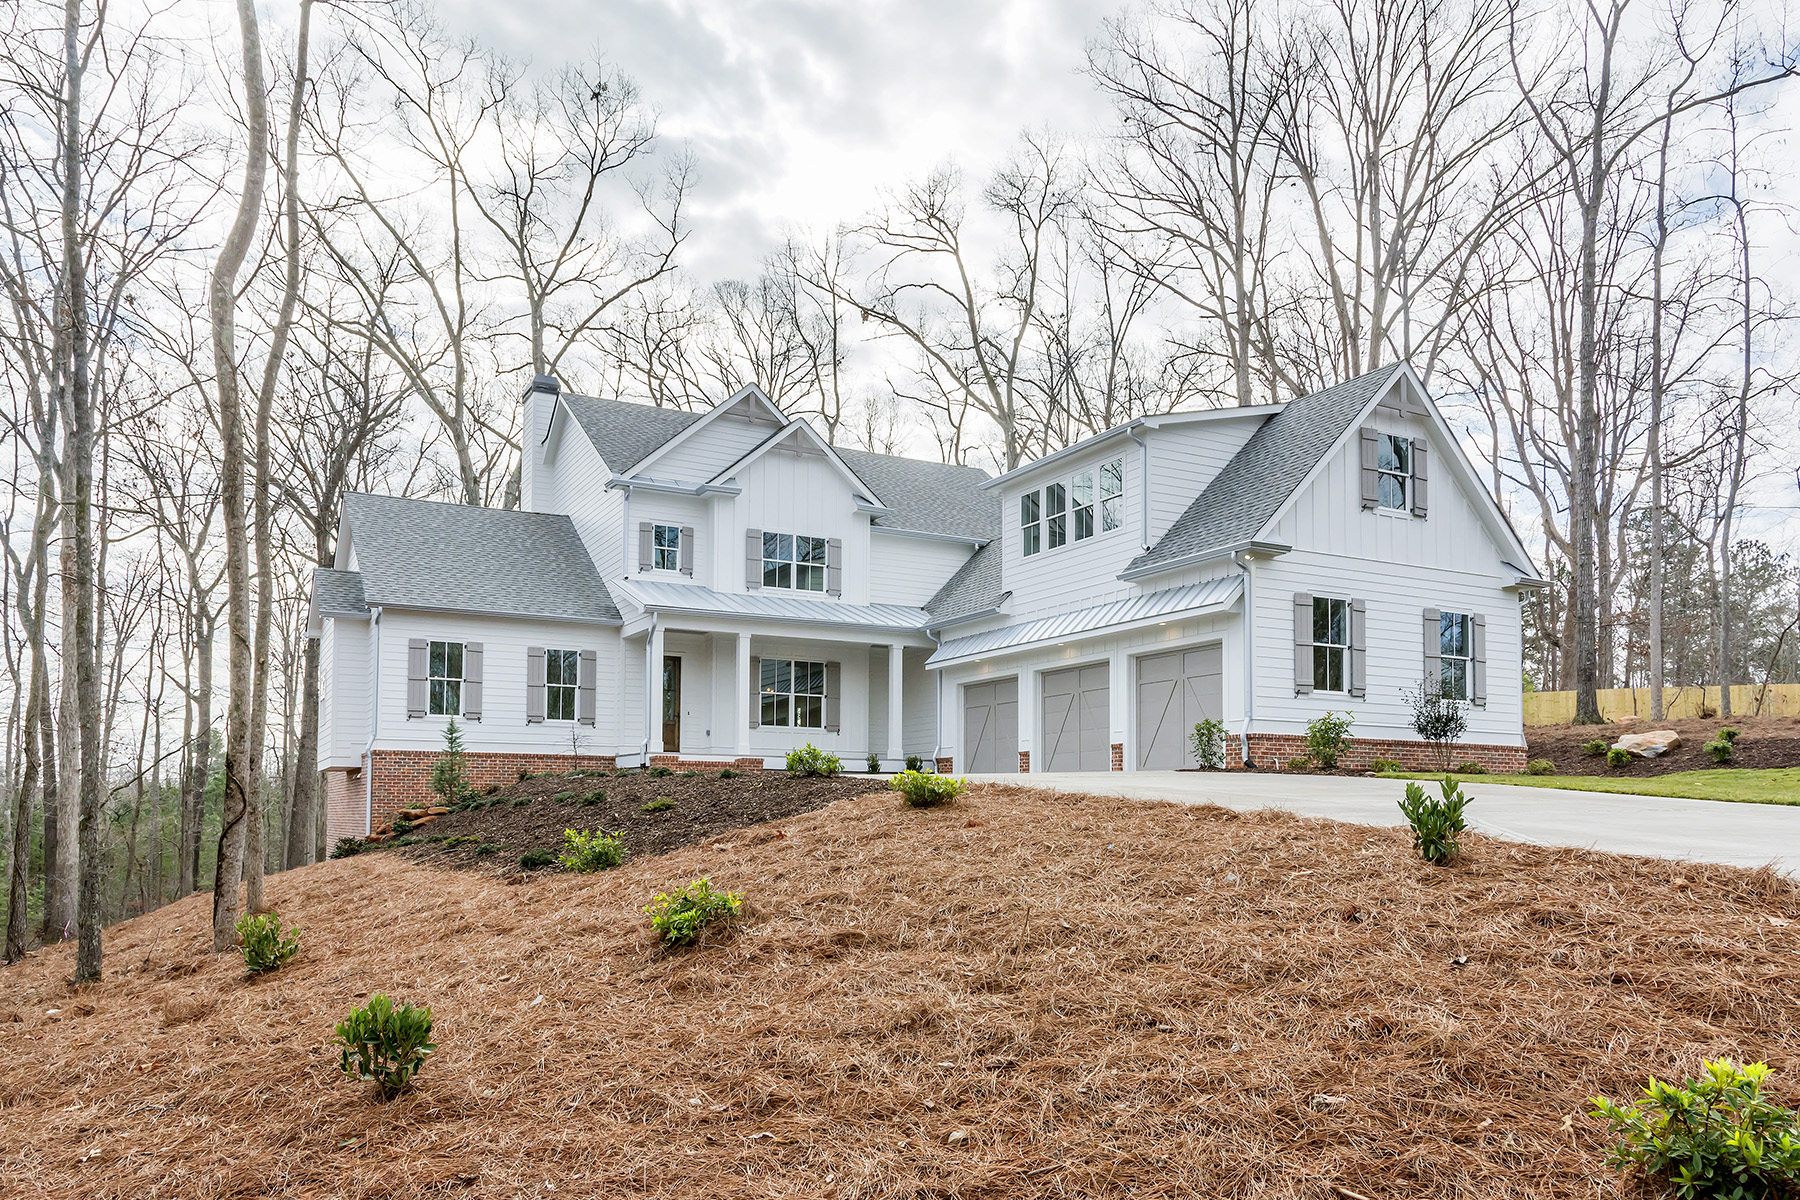 Single Family Home for Sale at Picturesque Milton Modern Farmhouse 15420 Birmingham Highway Milton, Georgia 30004 United States